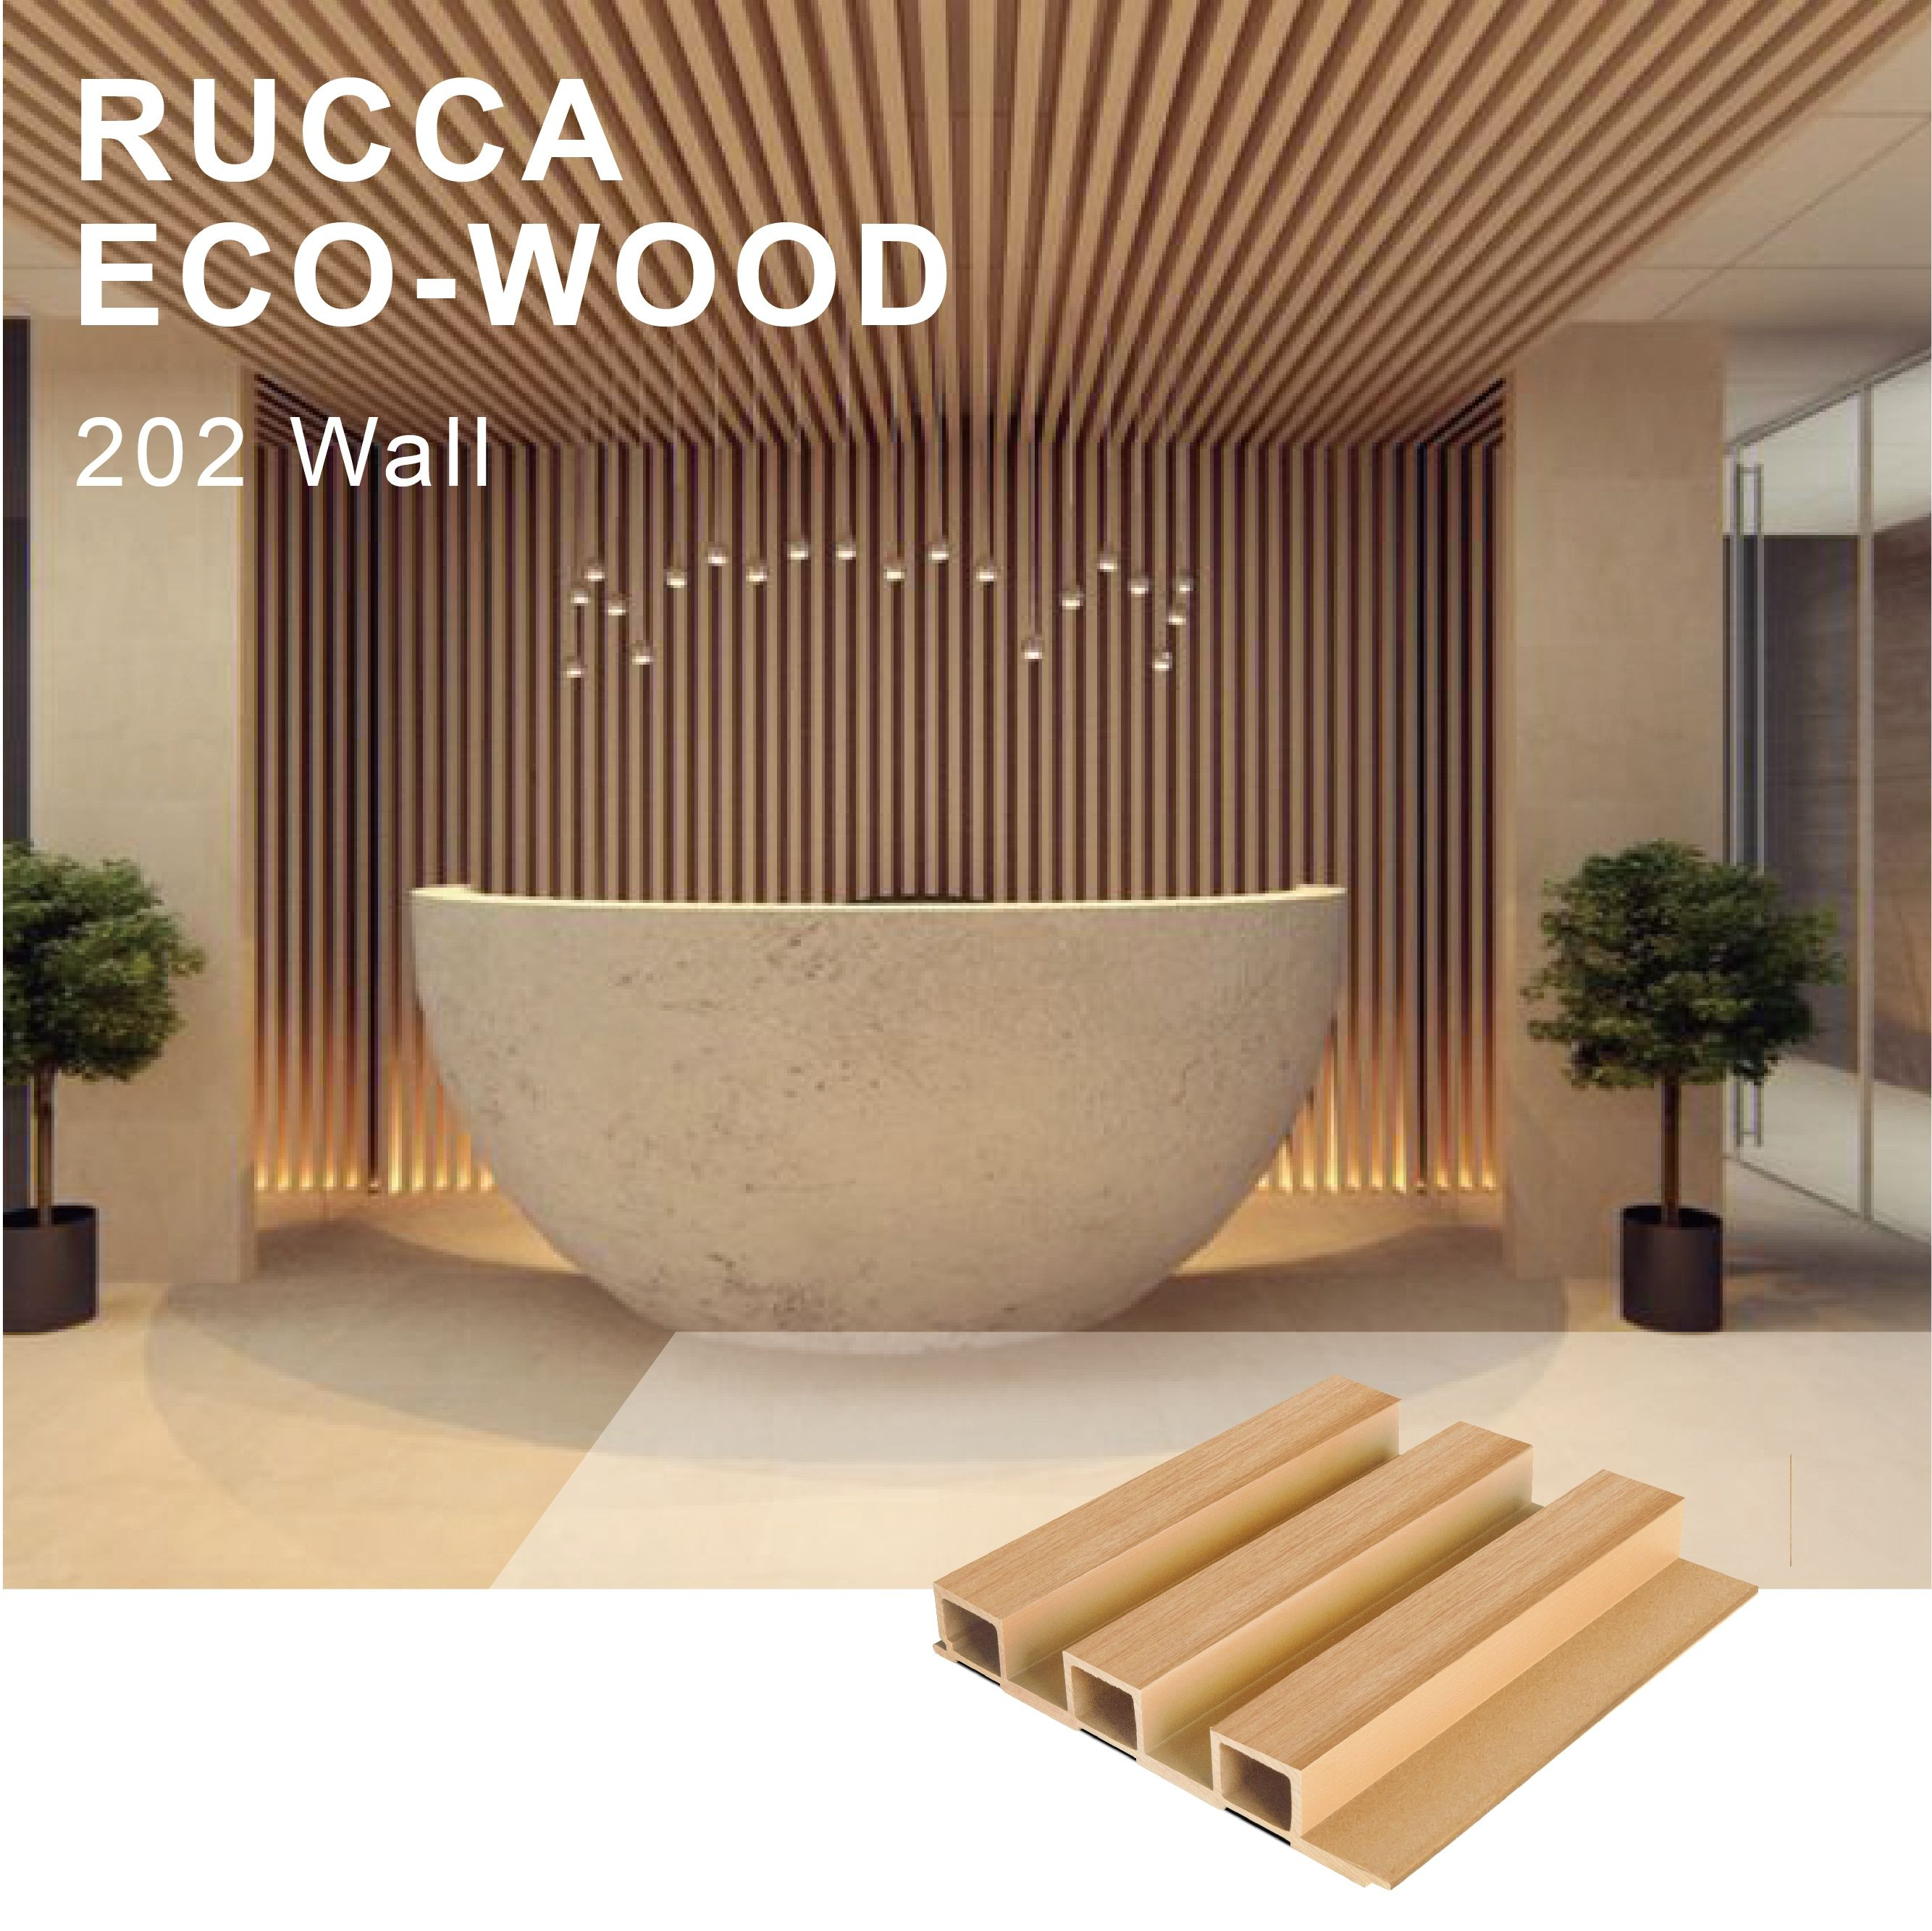 RUCCA wood plastic composite wall panel 202*30mm wpc cladding waterproof wood panel boards